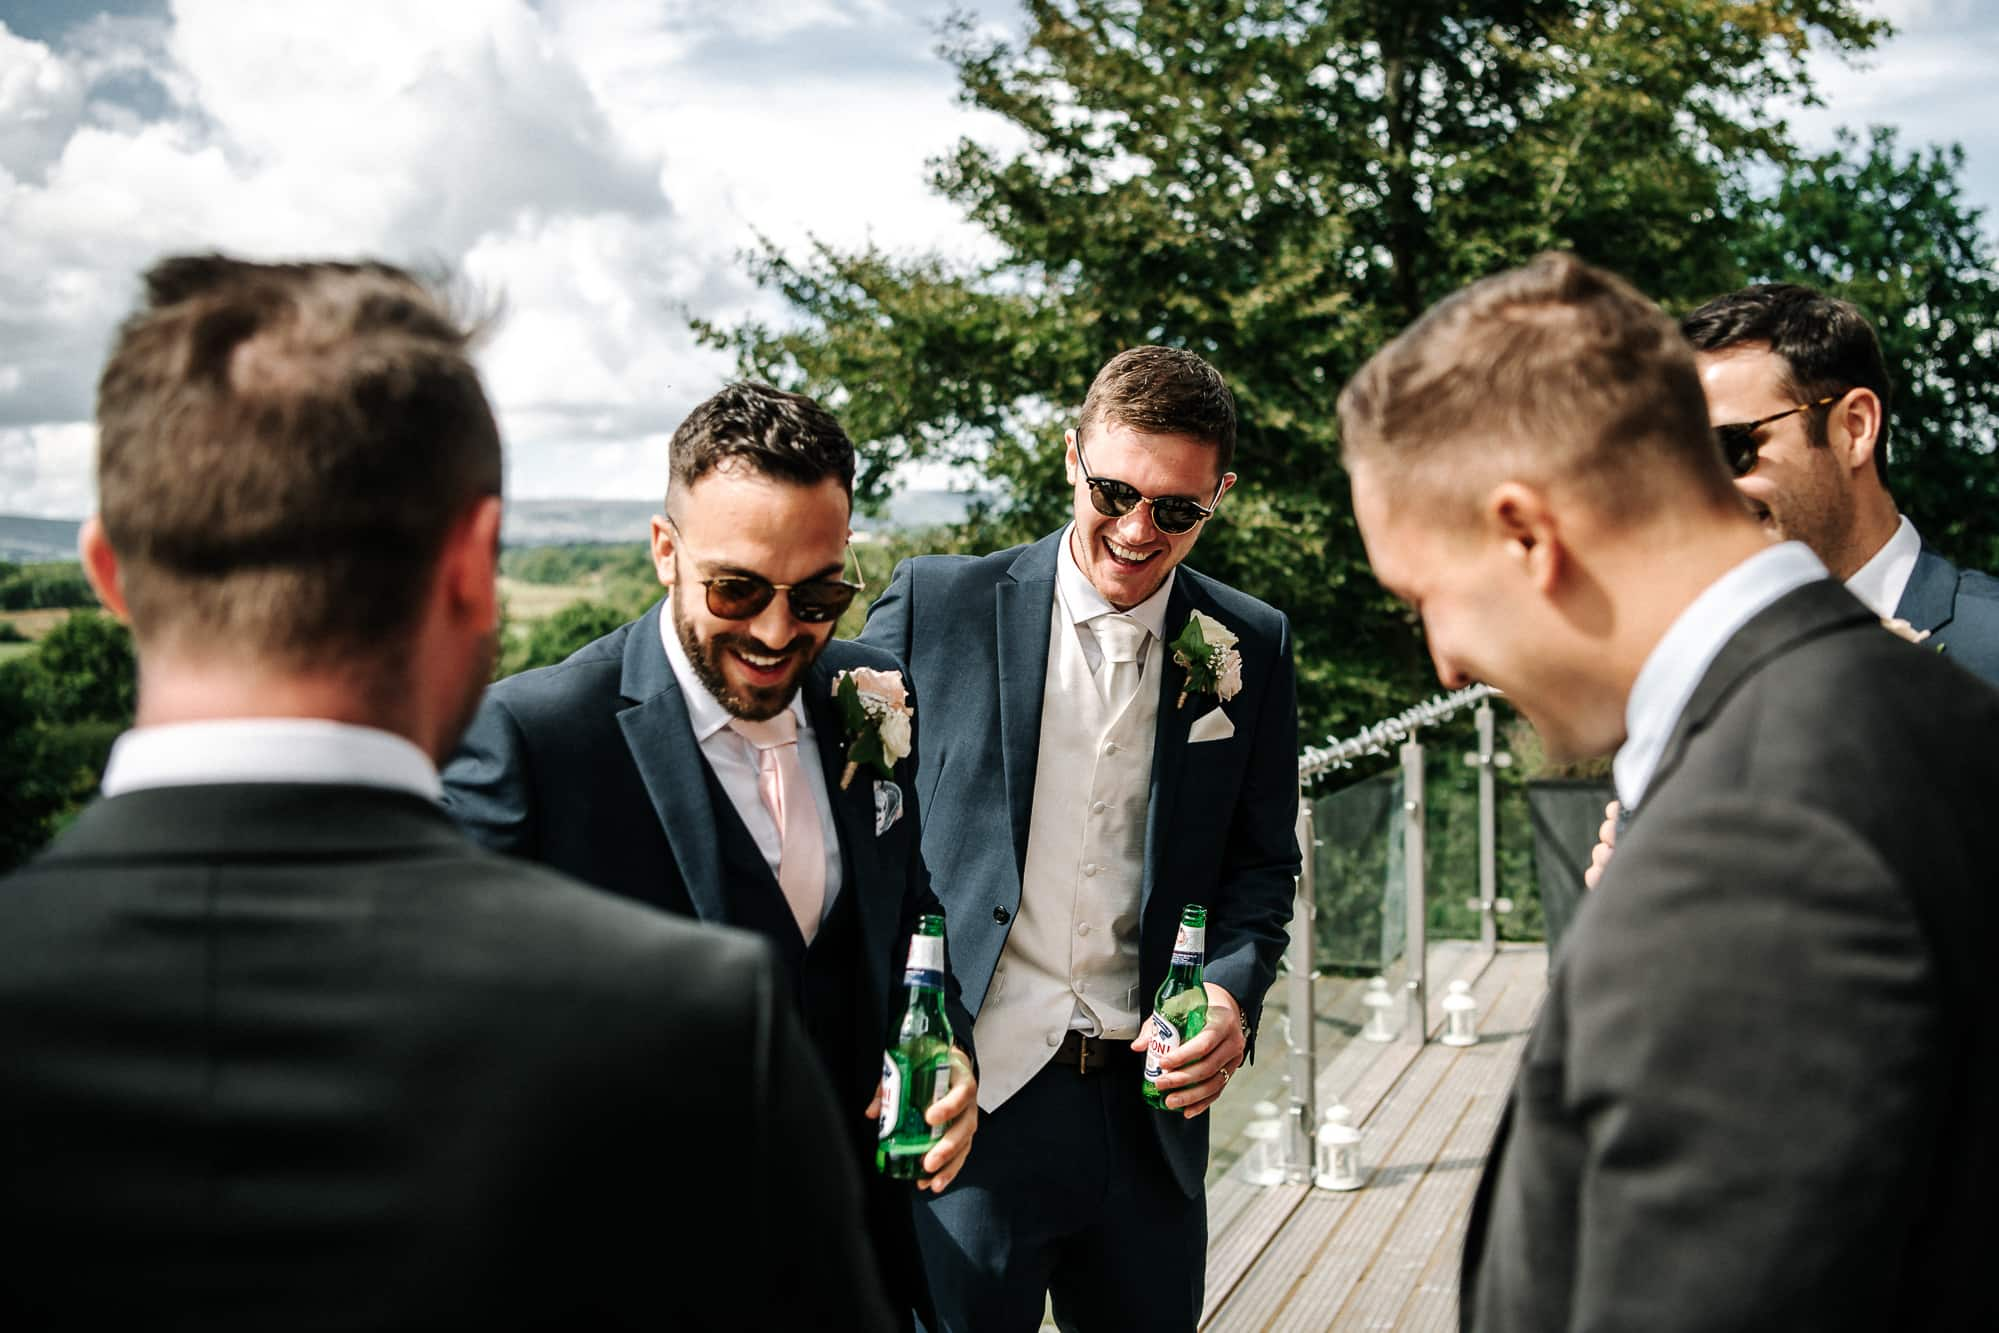 Guests laughing during reception drinks